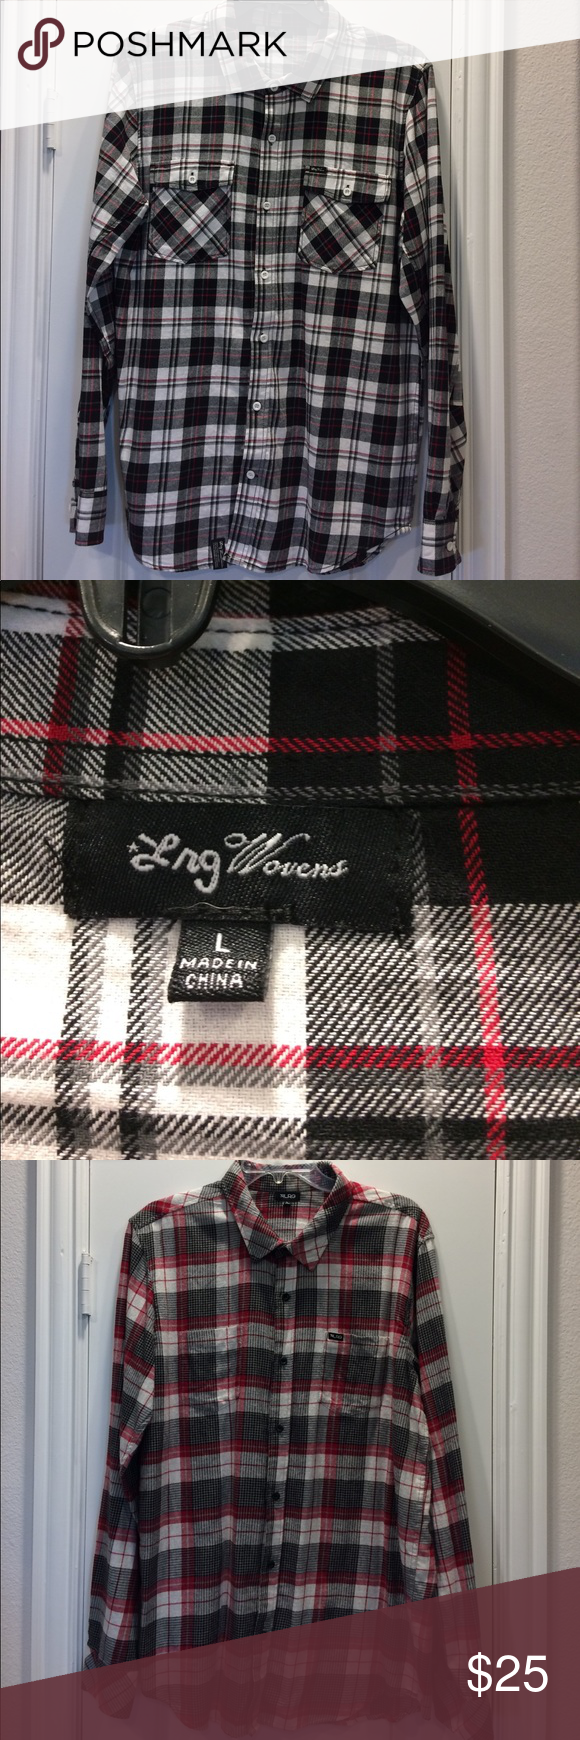 Flannel jacket with fur inside   Menus LRG Brand Skate Flannels I have two size Large LRG Brand